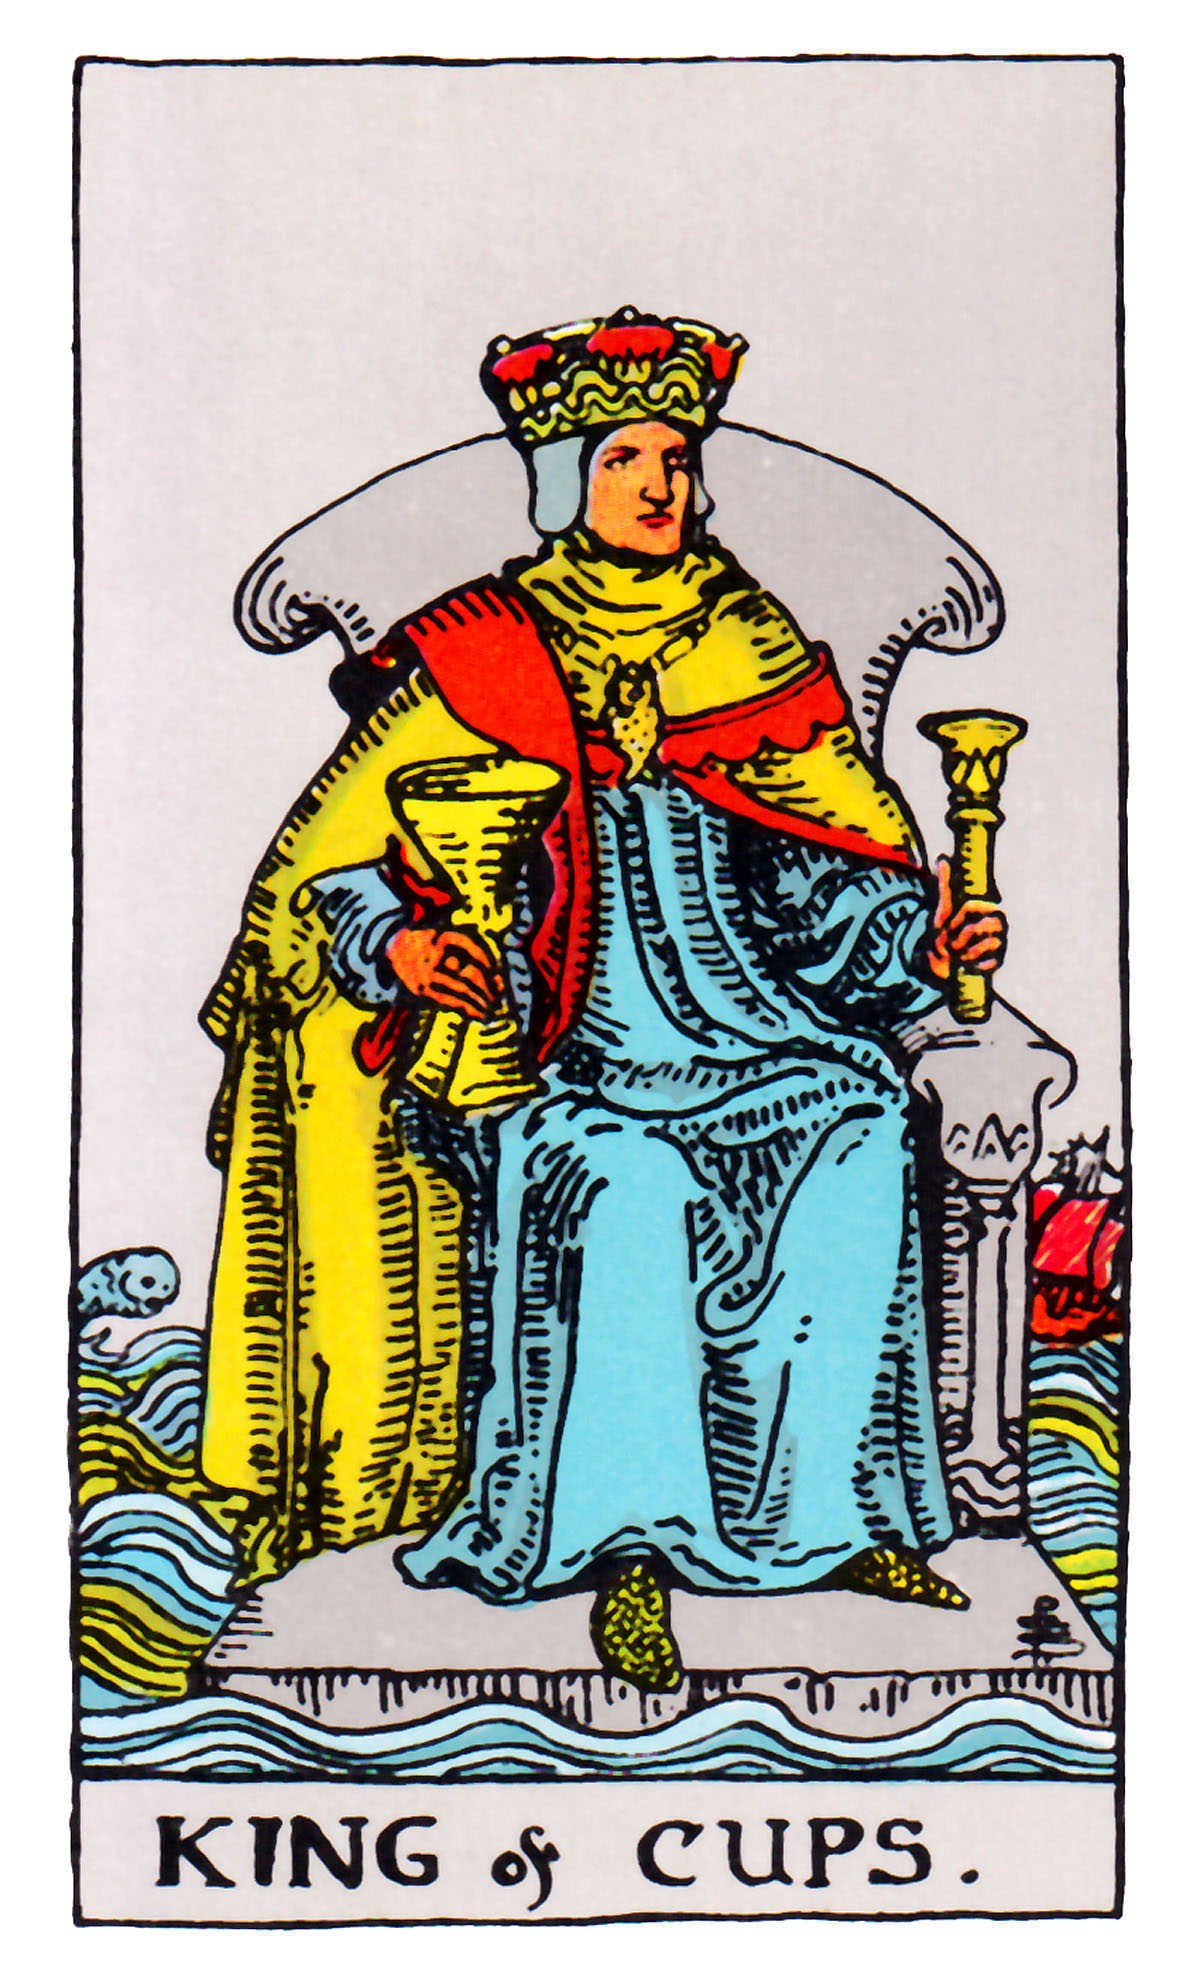 A Review Of The Rider-Waite Tarot: The Major Arcana